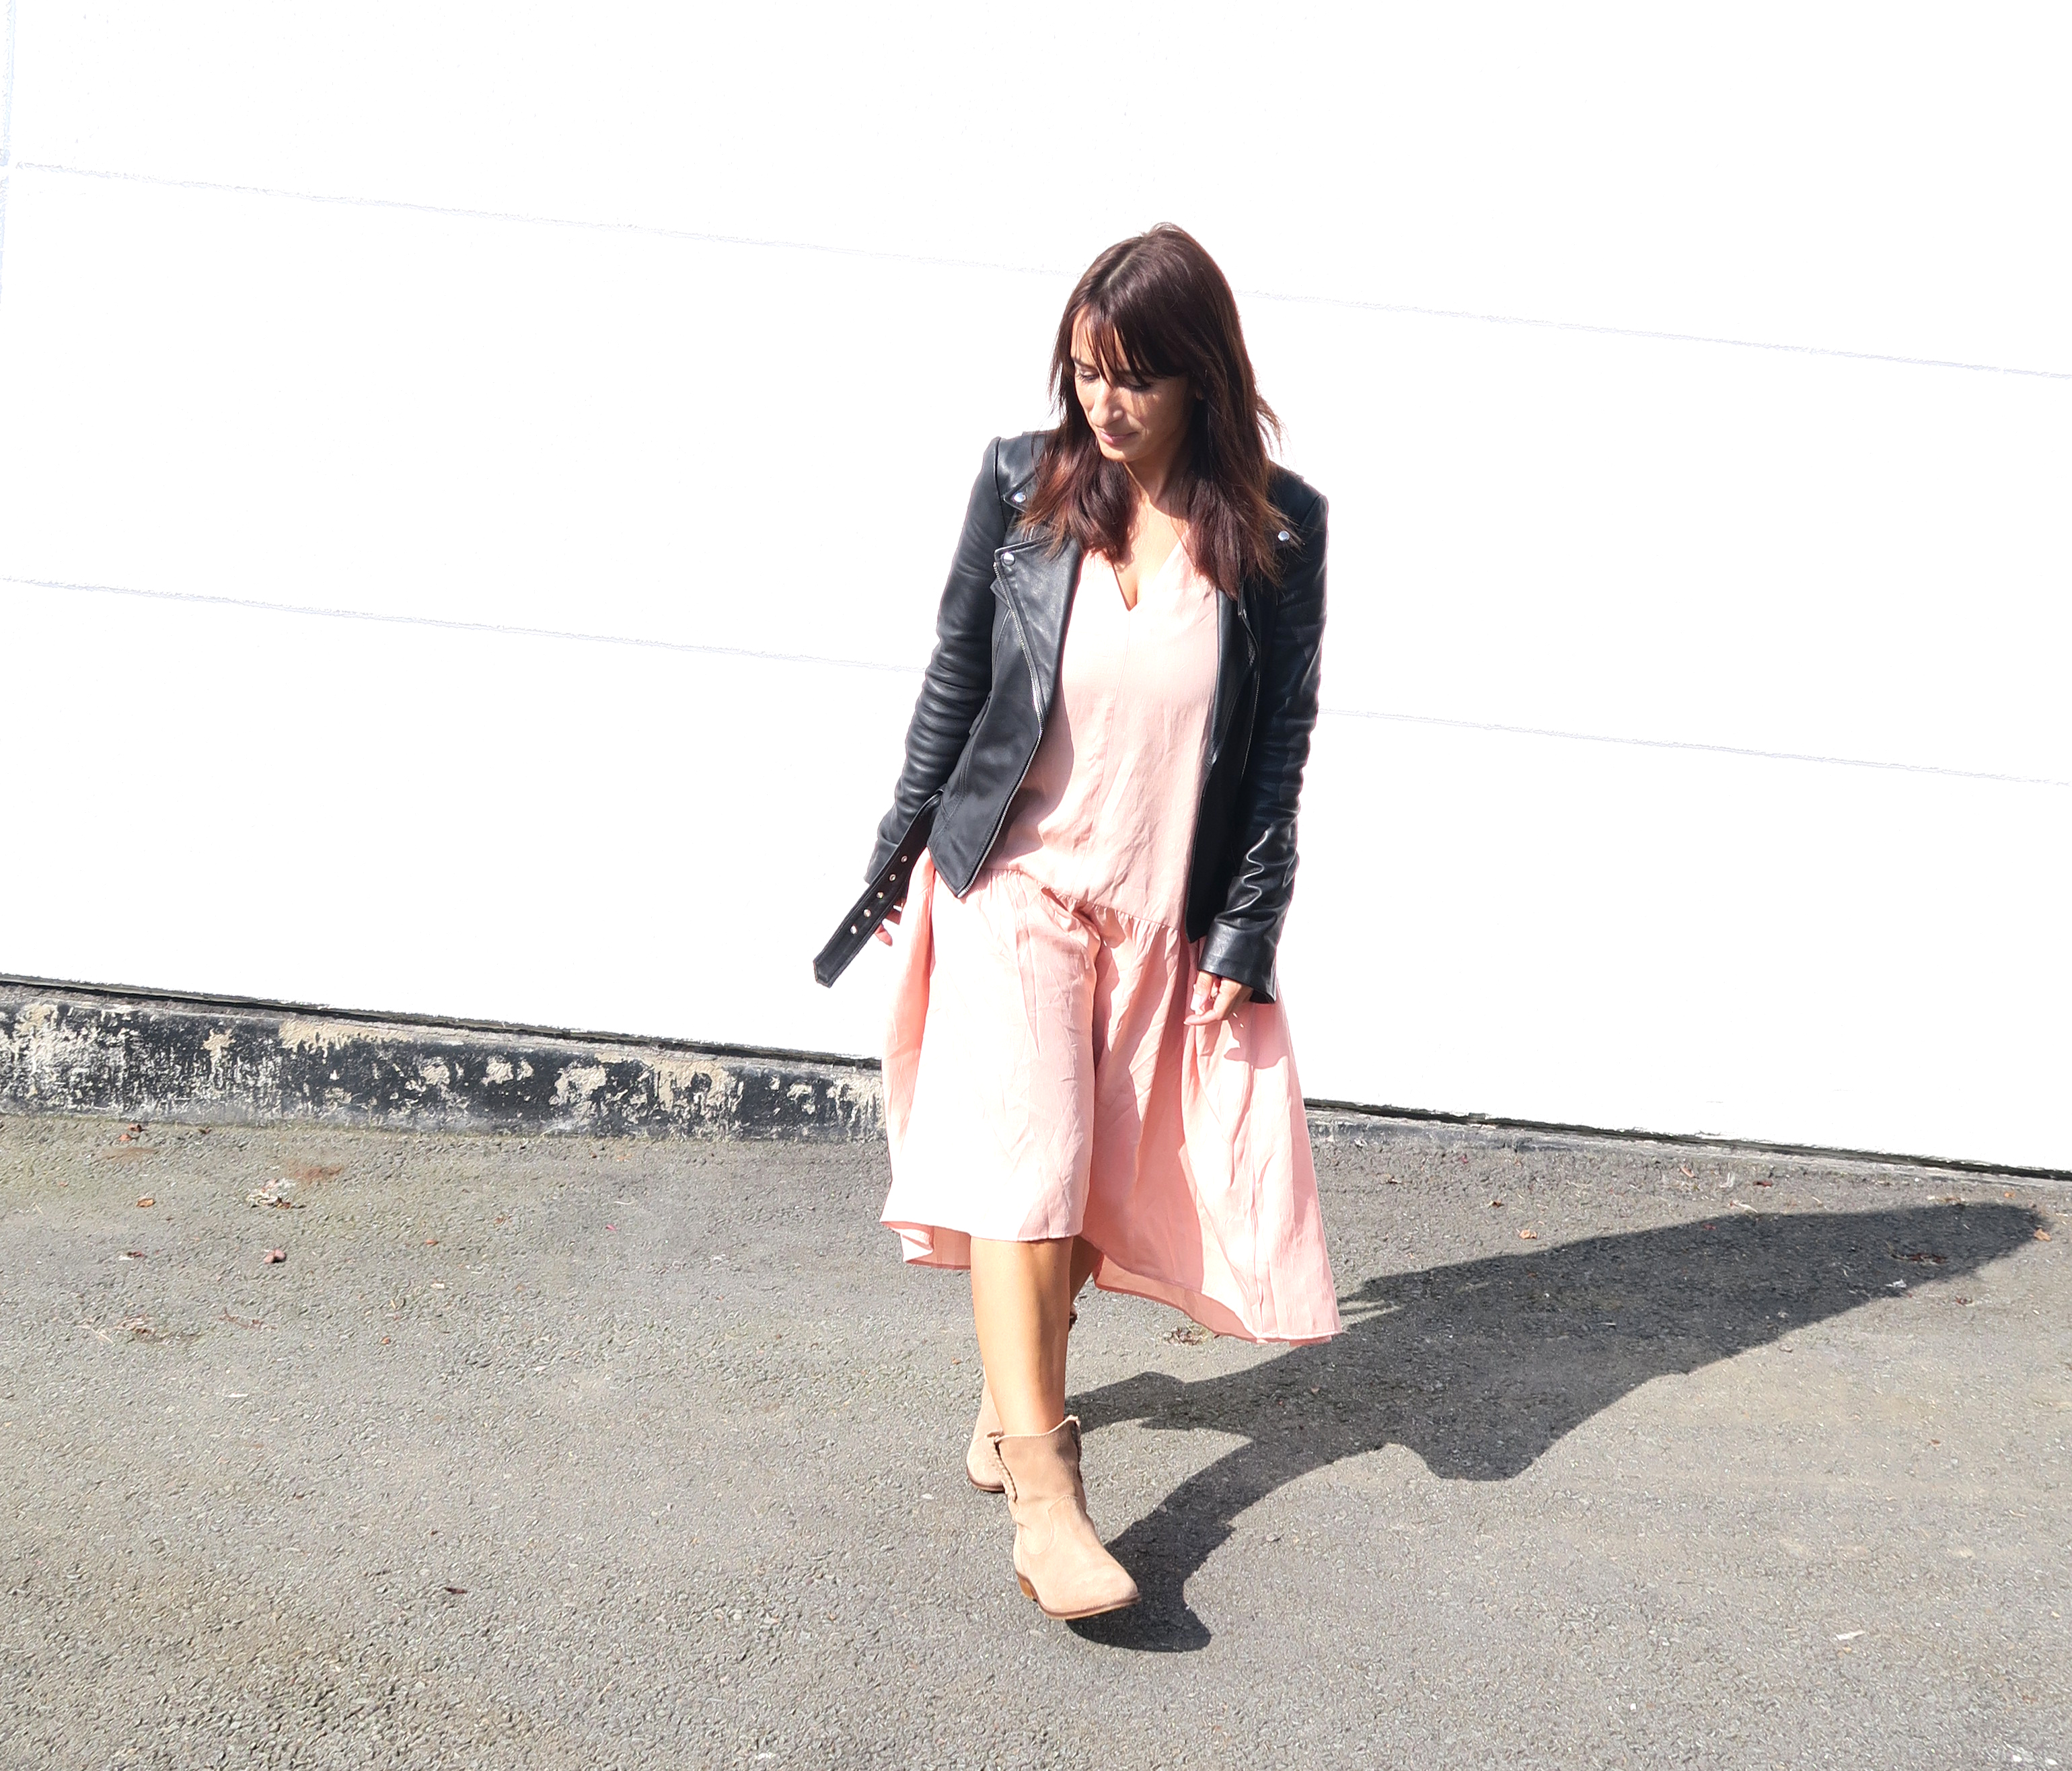 Modesalat-blogger-streetstyle-leather-bloggerstyle-ruffles-dress-2